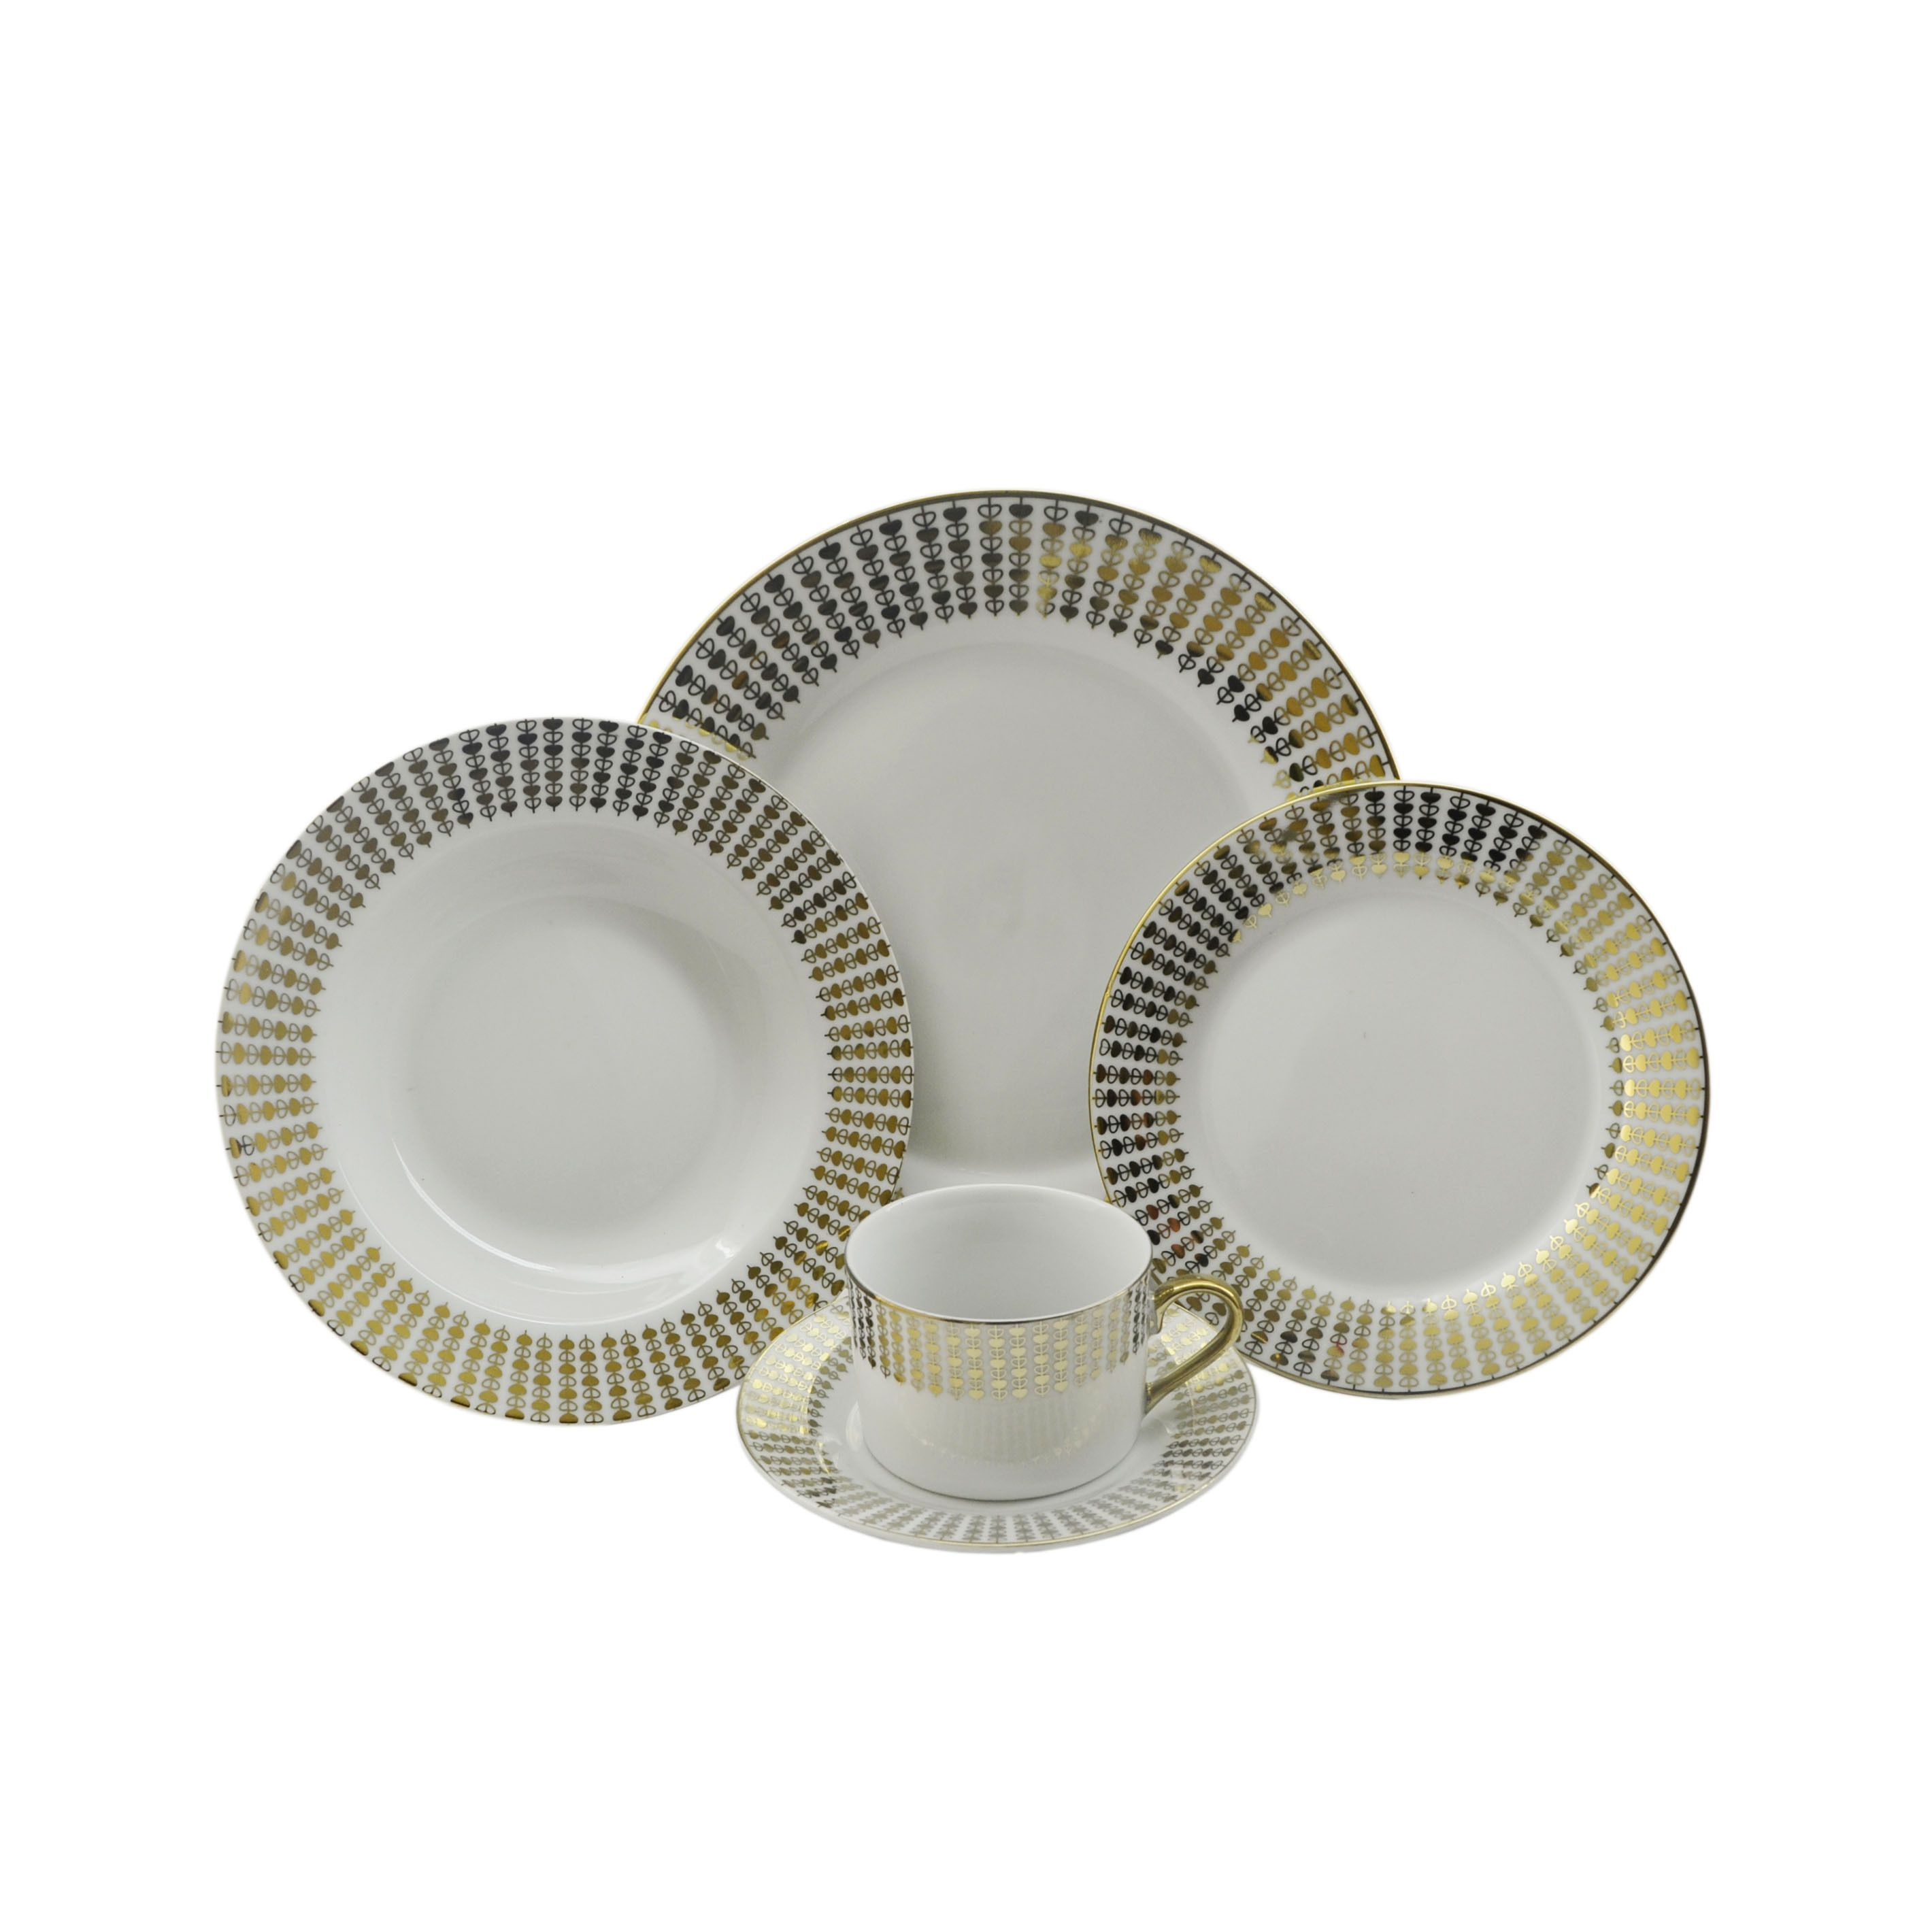 String of Hearts Porcelain 40-piece Dinnerware (Set for 8) (YL7620)  sc 1 st  Pinterest & String of Hearts Porcelain 40-piece Dinnerware (Set for 8) (YL7620 ...